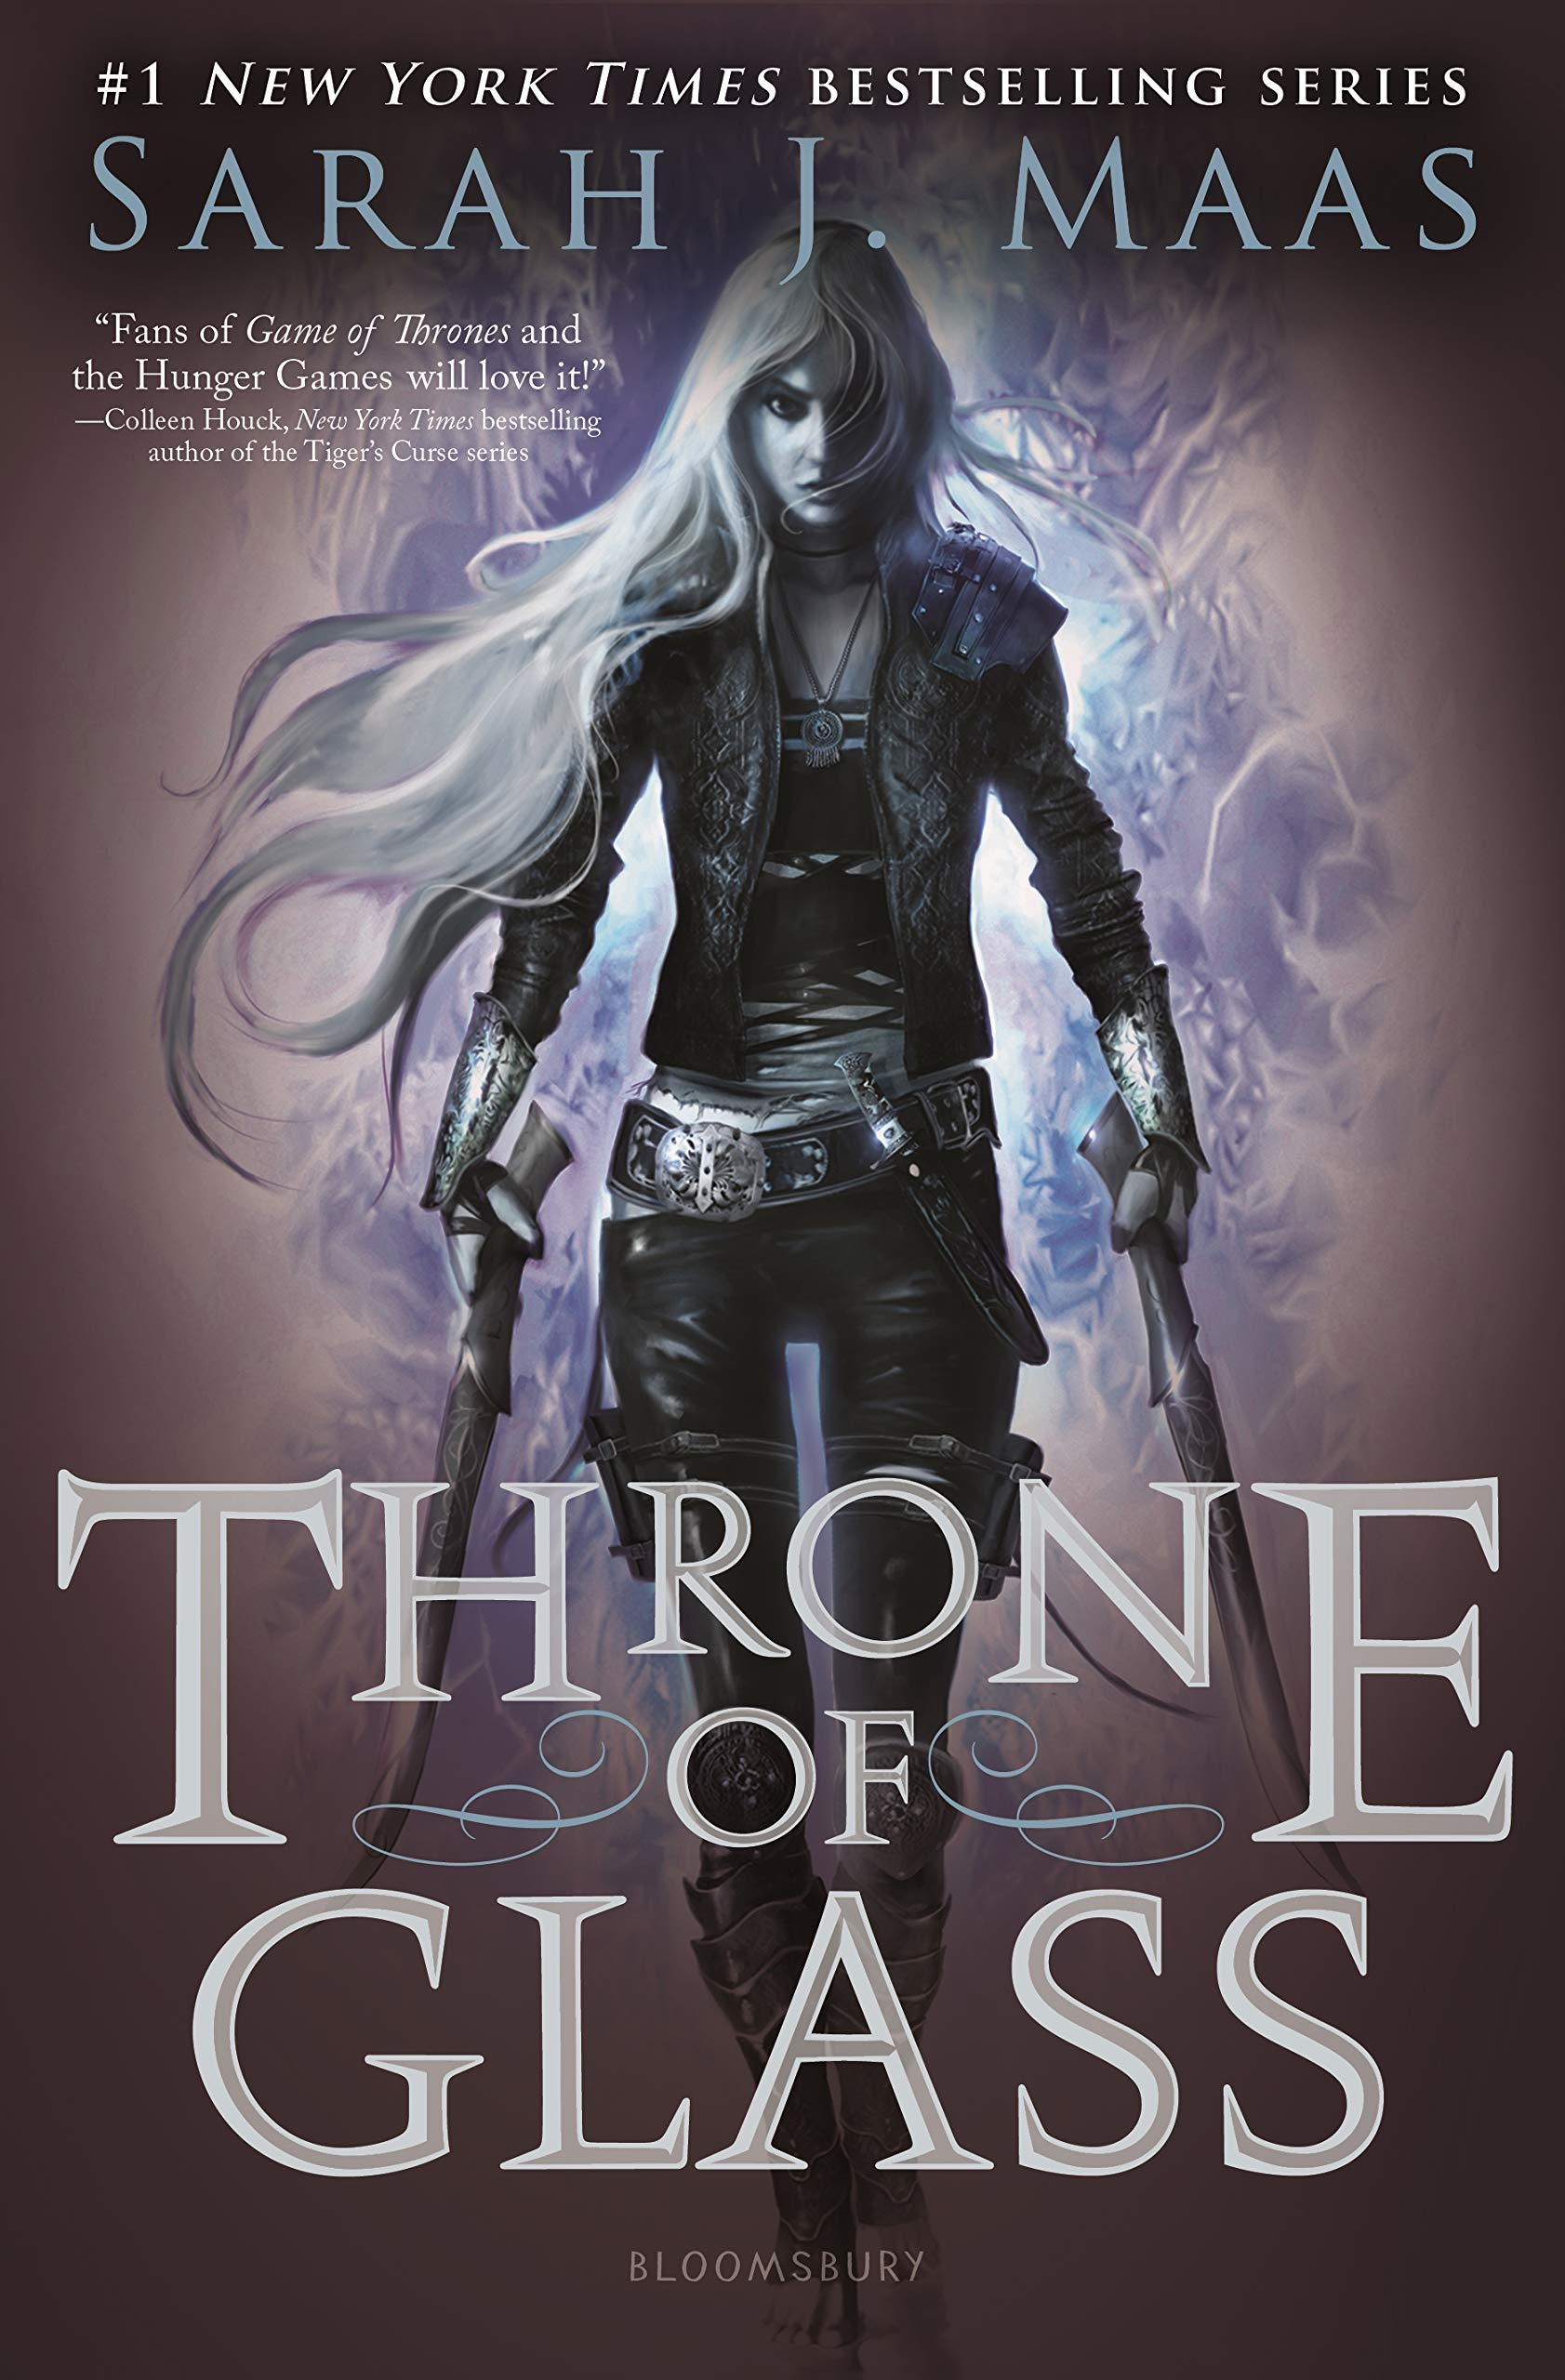 Amazon.com: Throne of Glass (Throne of Glass, 1) (9781599906959): Maas,  Sarah J.: Books